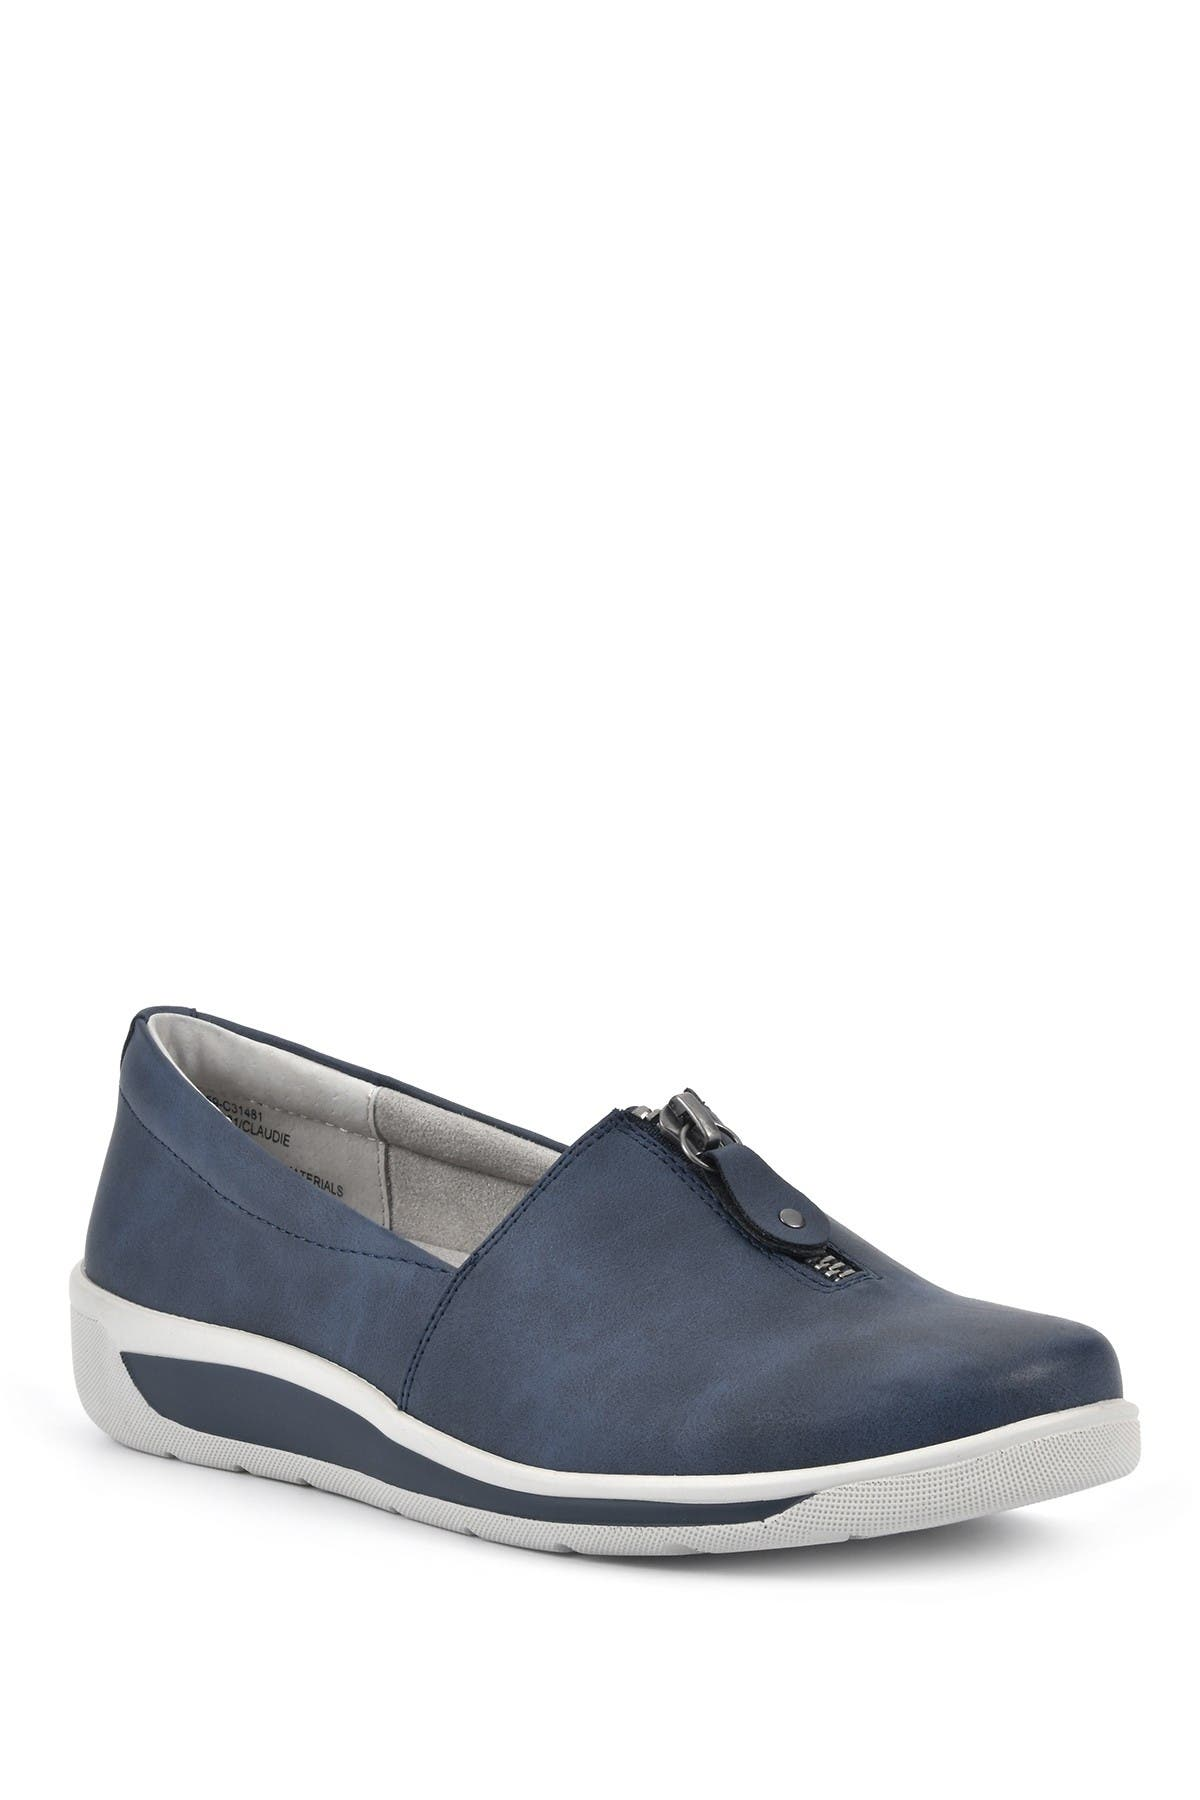 Cliffs By White Mountain Flats CLAUDIE SNEAKER FLAT